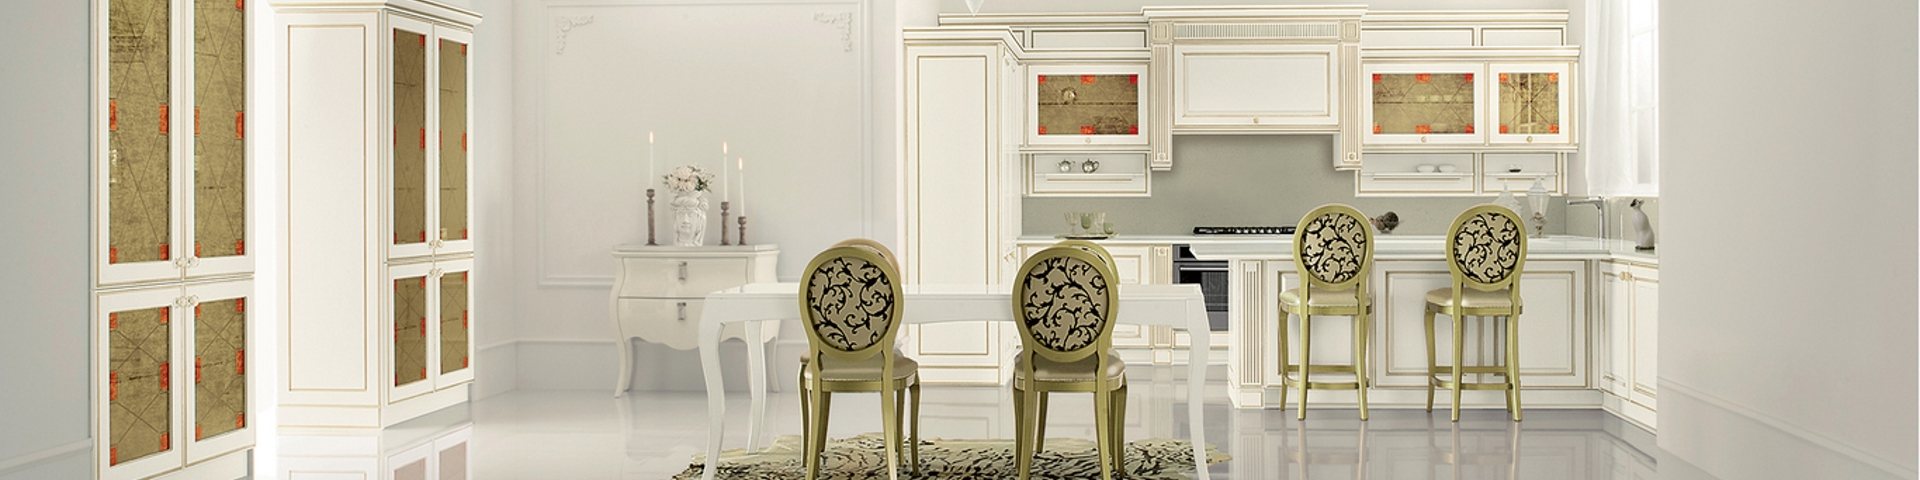 cucina mirabeau di veneta cucine bertoli arredamenti. Black Bedroom Furniture Sets. Home Design Ideas